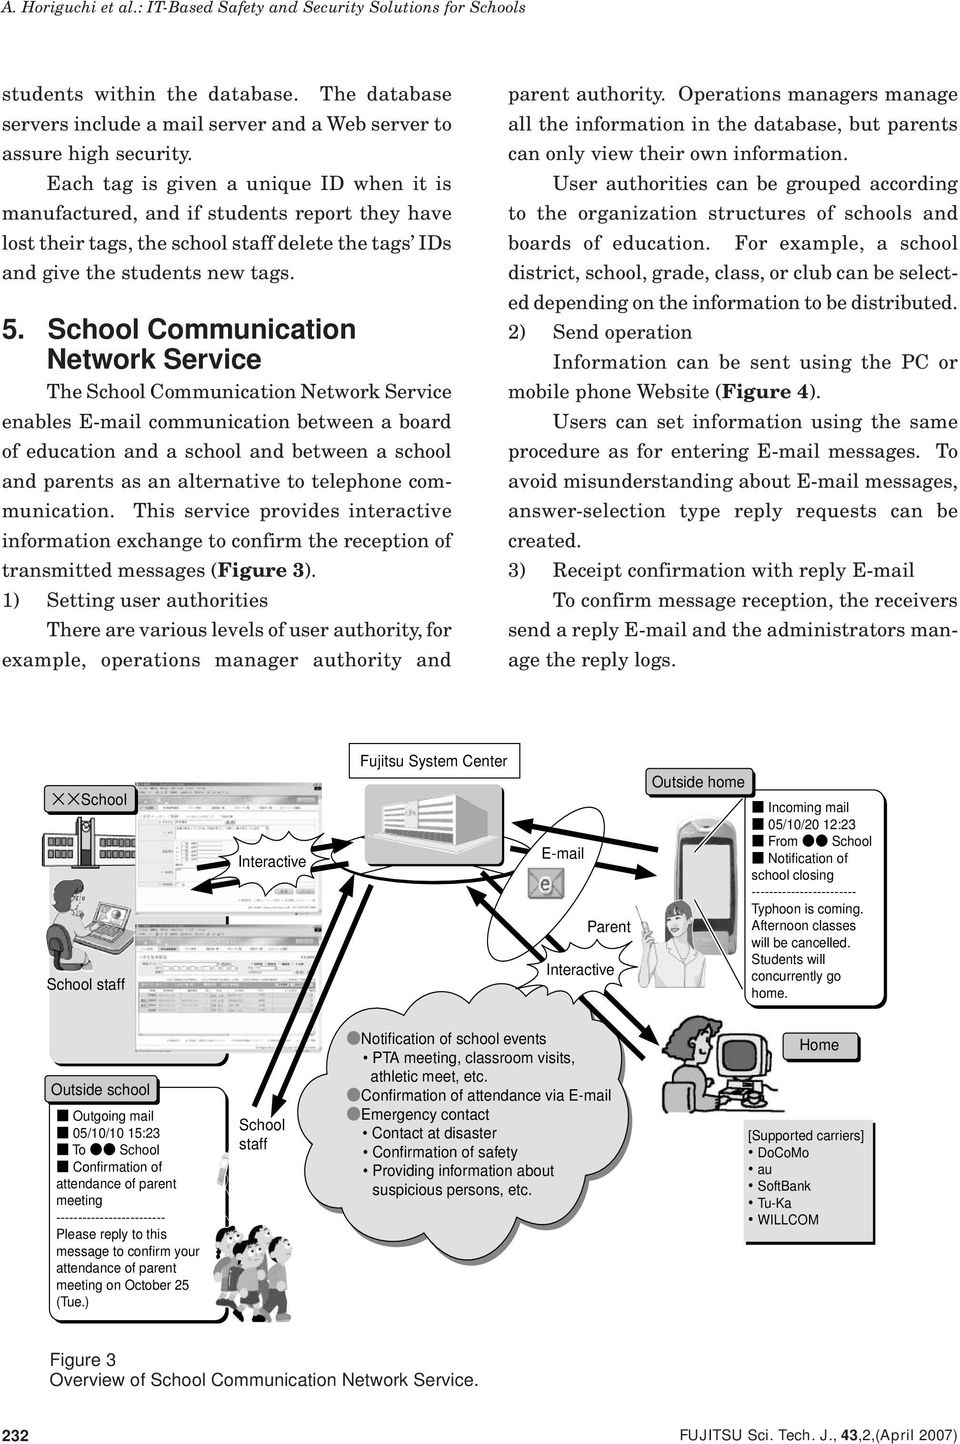 School Communication Network Service The School Communication Network Service enables E-mail communication between a board of education and a school and between a school and parents as an alternative